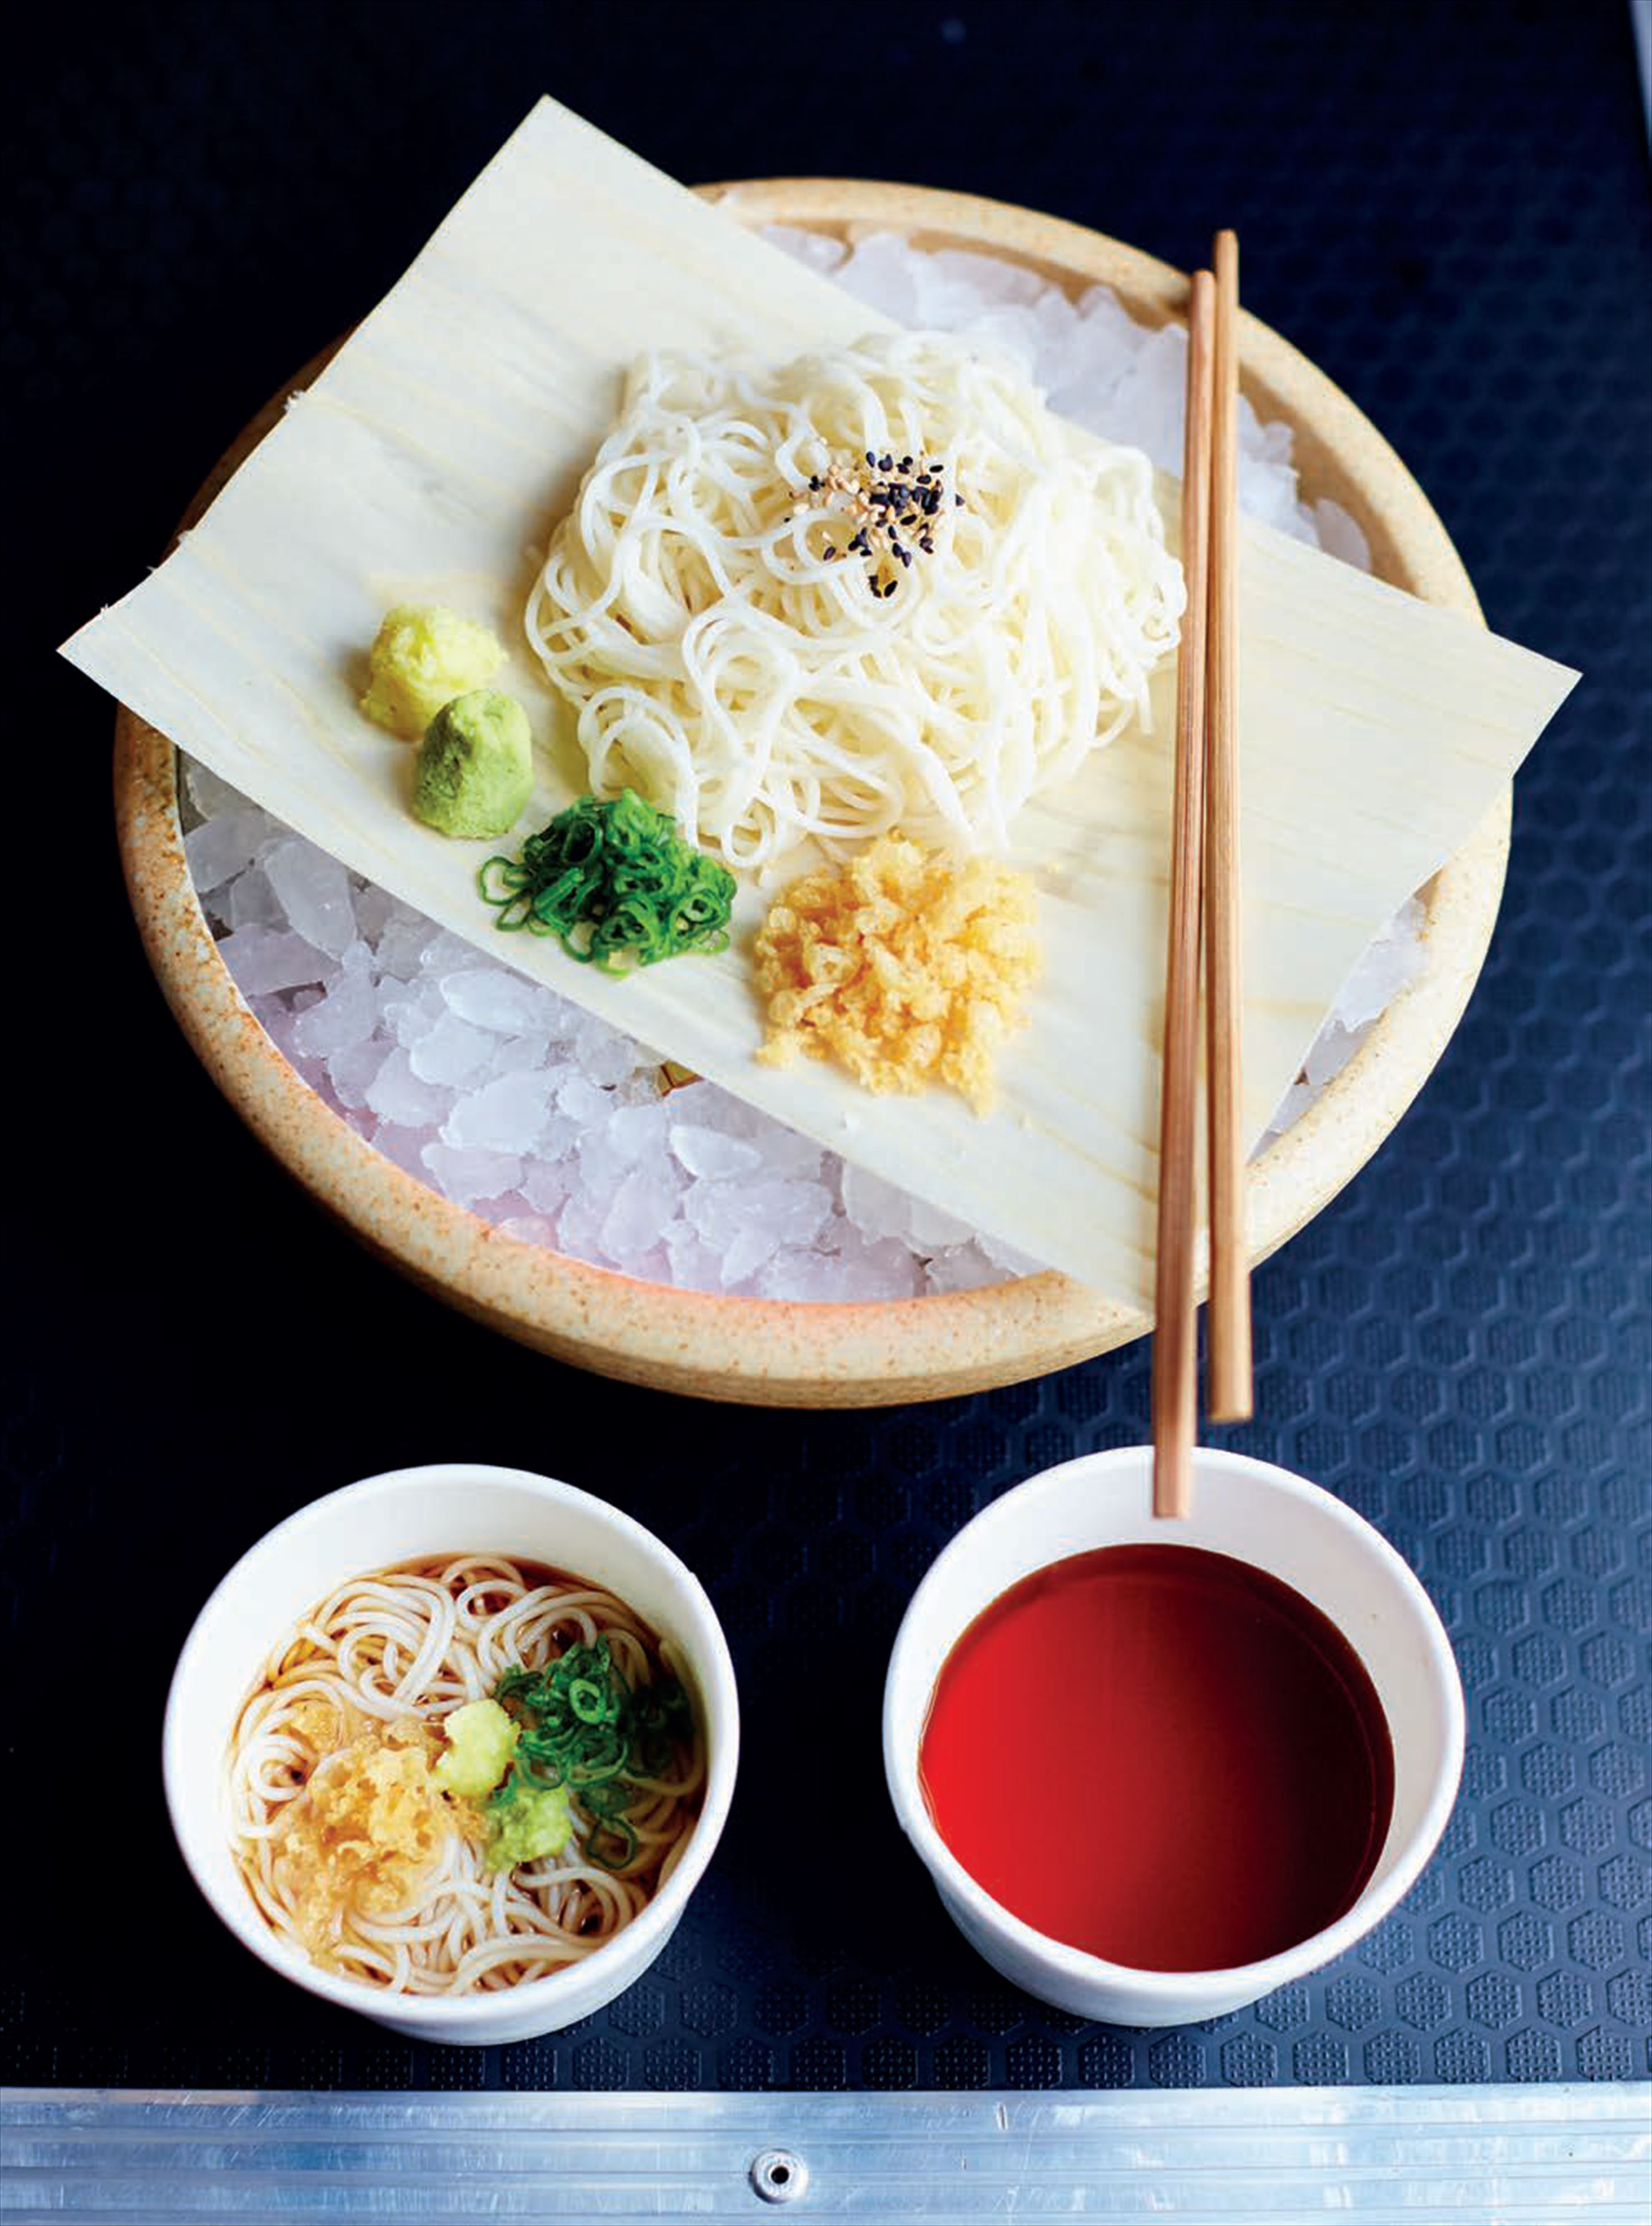 Chilled somen noodles in shiitake dipping broth